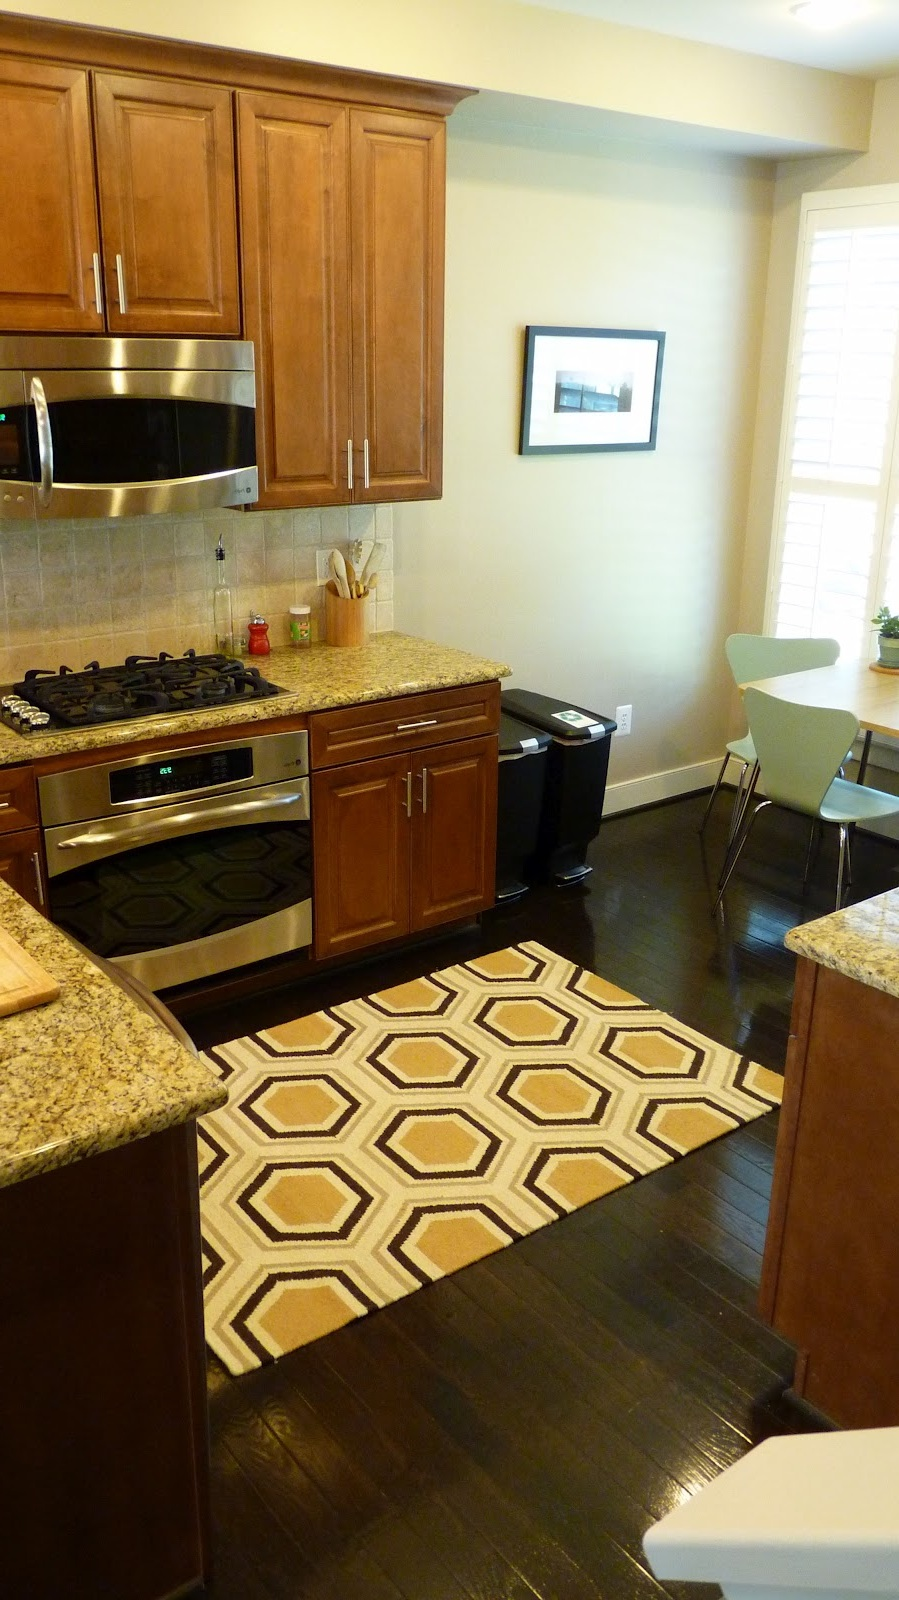 Contemporary Kitchen Rugs For Hardwood Floor (View 1 of 5)